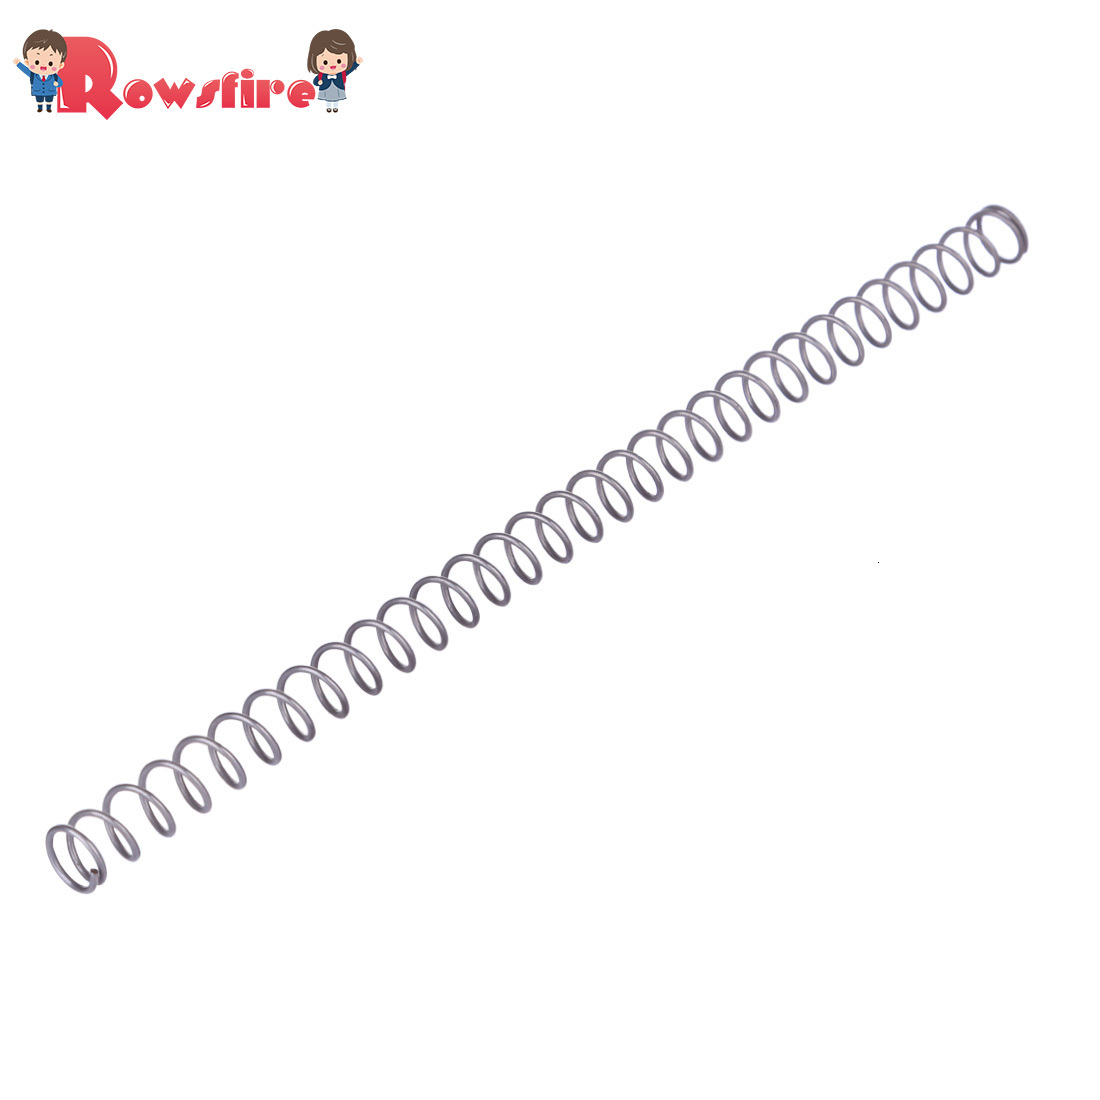 Wholesale 1/5/10/20pcs 1.3 Wire Diameter Spring For GJ M24/GJ 98k/GJ AWM Enhanced Internal Modification Metal Kit Gen.2